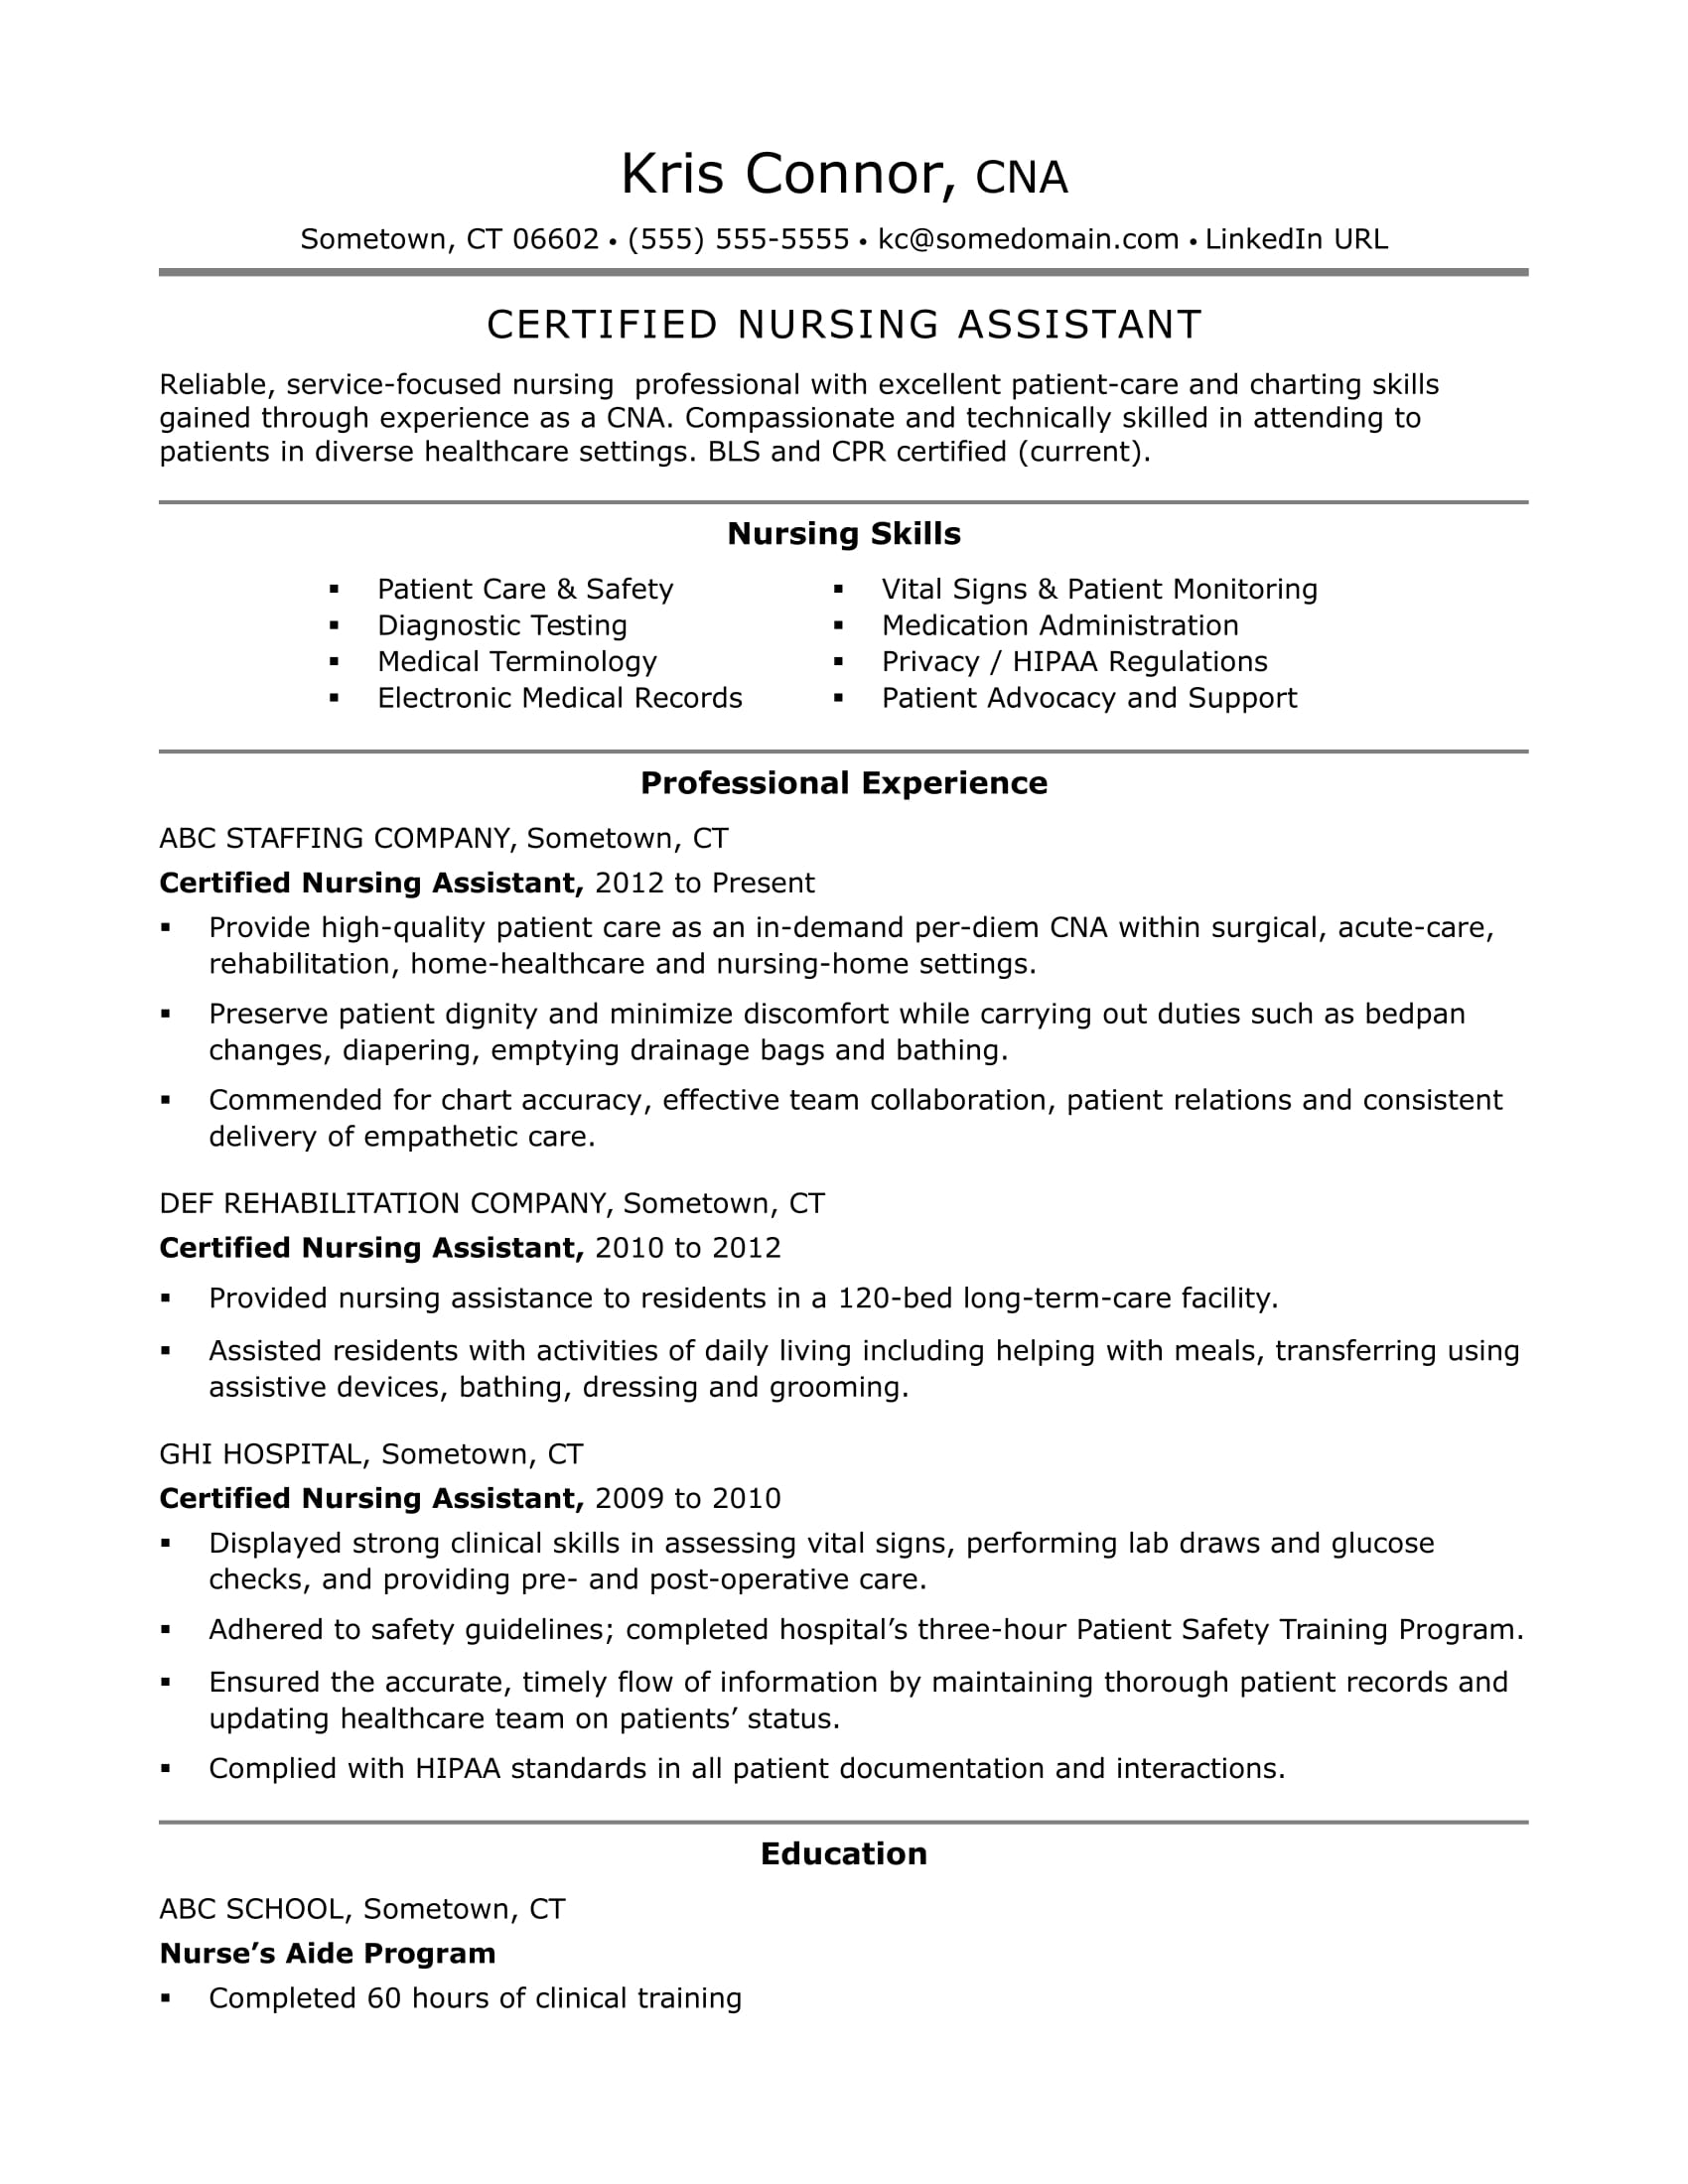 cna resume examples skills for cnas monster description duties certified nursing Resume Cna Description Duties Resume